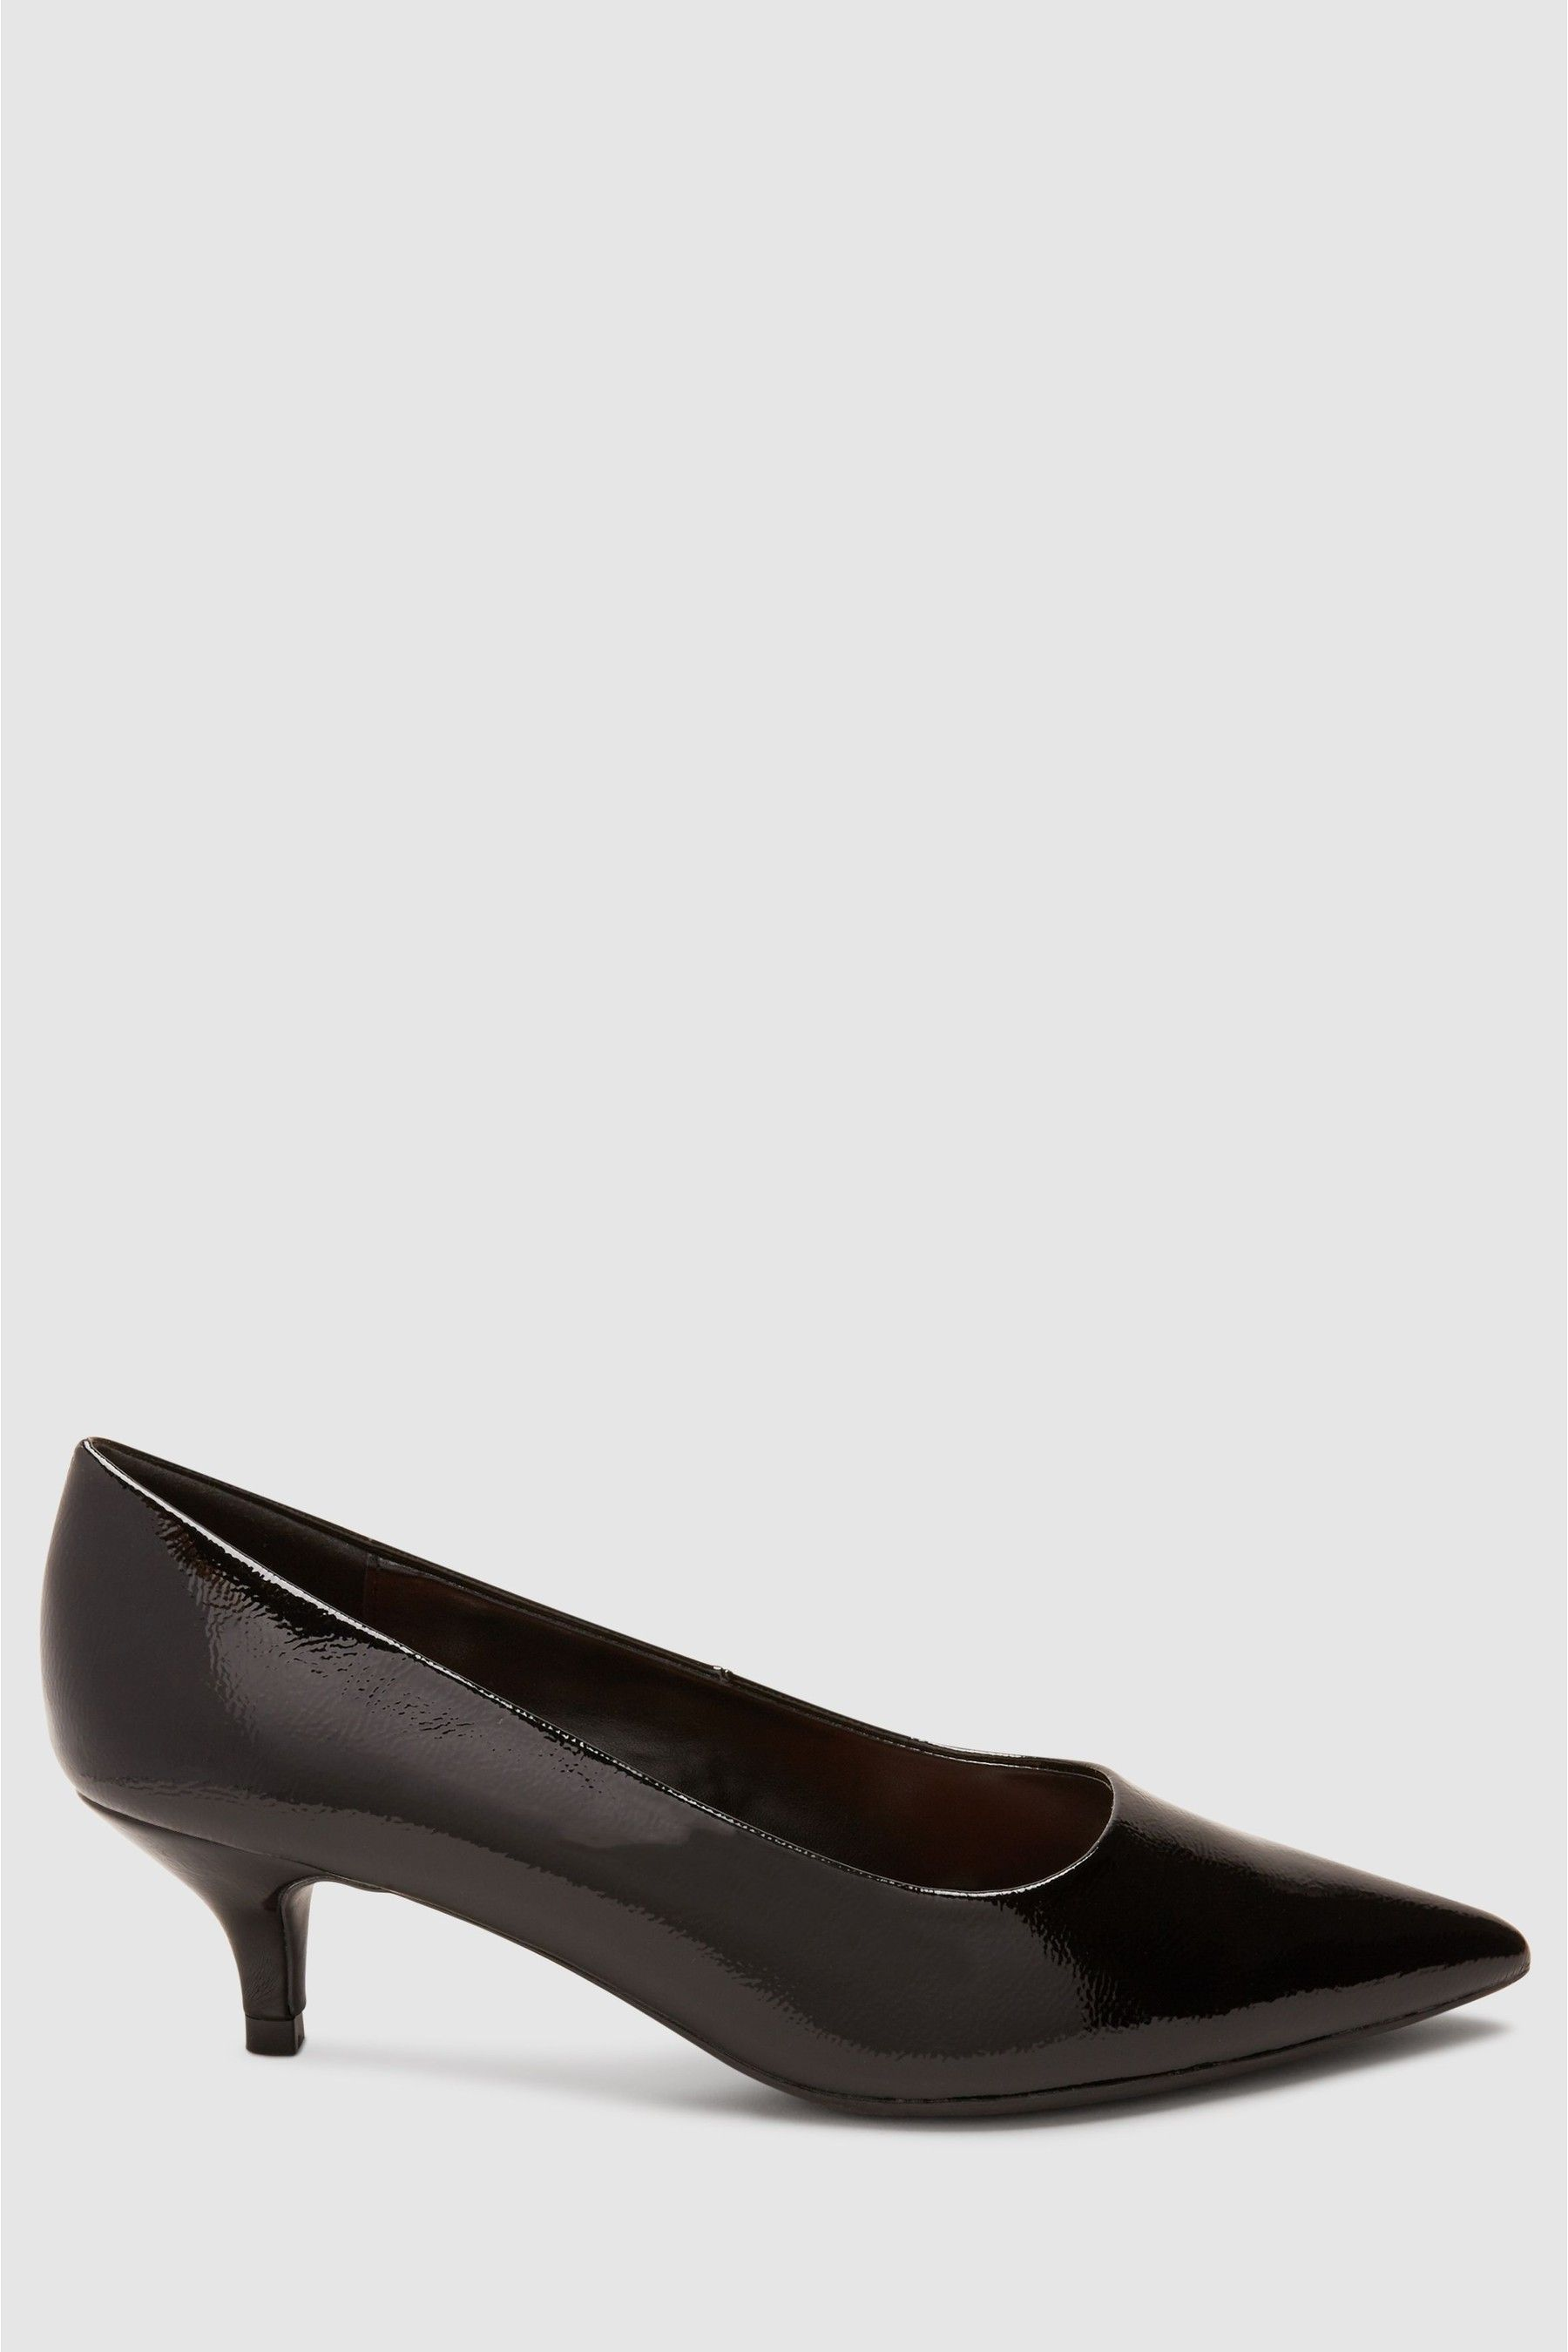 Womens Next Black Patent Forever Comfort Kitten Heel Court Shoes Black Court Shoes Black Shoes Navy Court Shoes